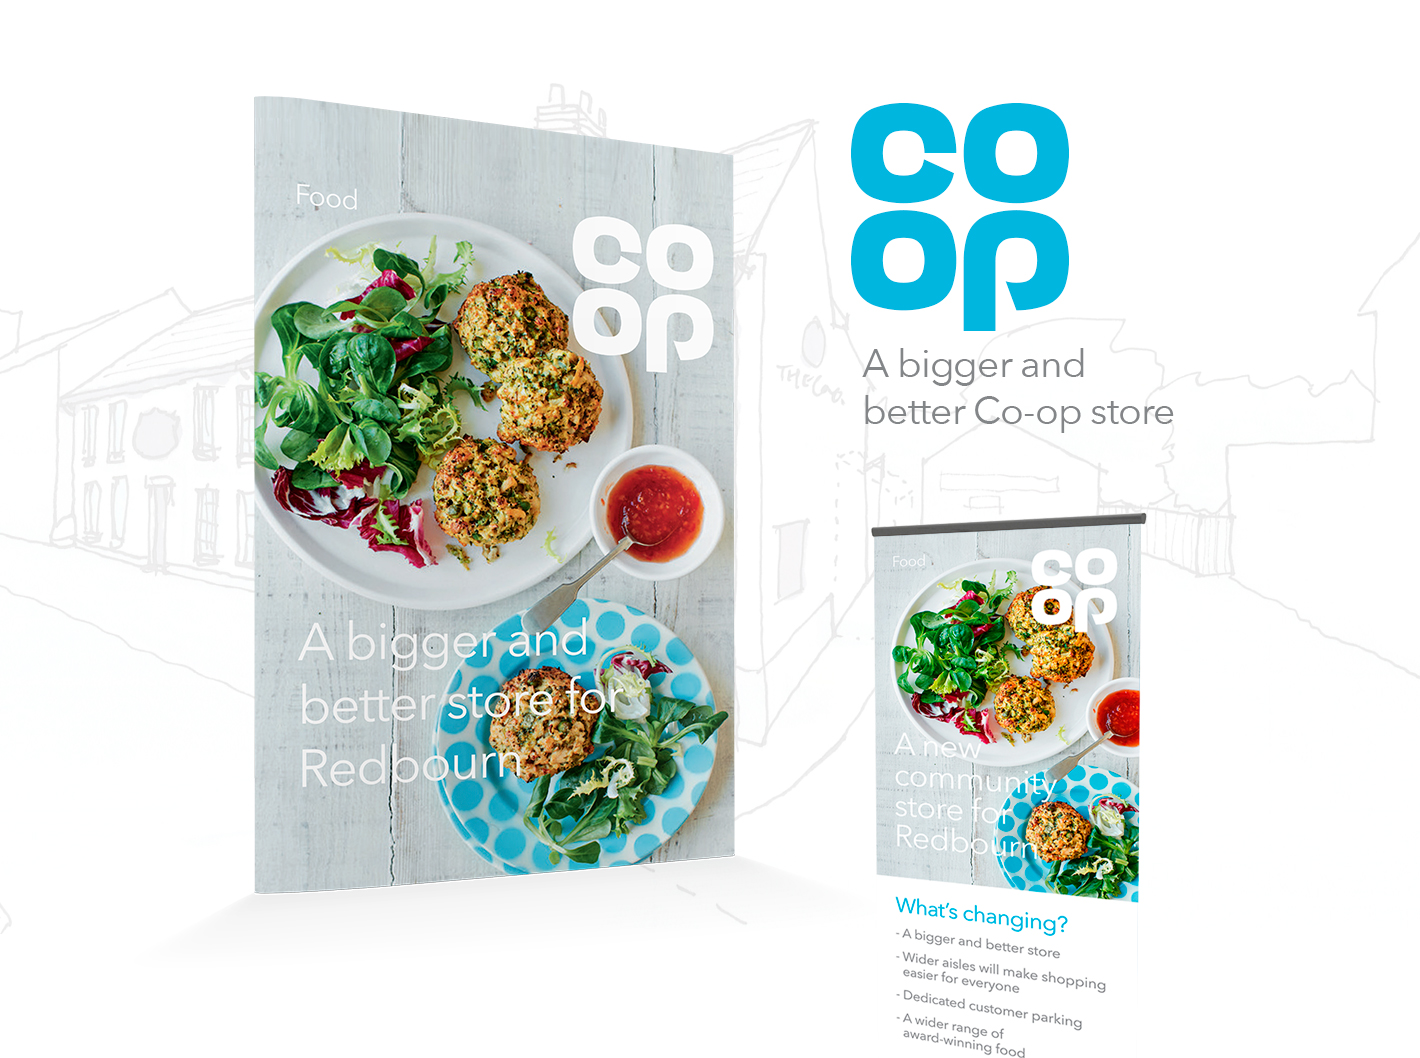 co-op leaflet design promoting their food selection